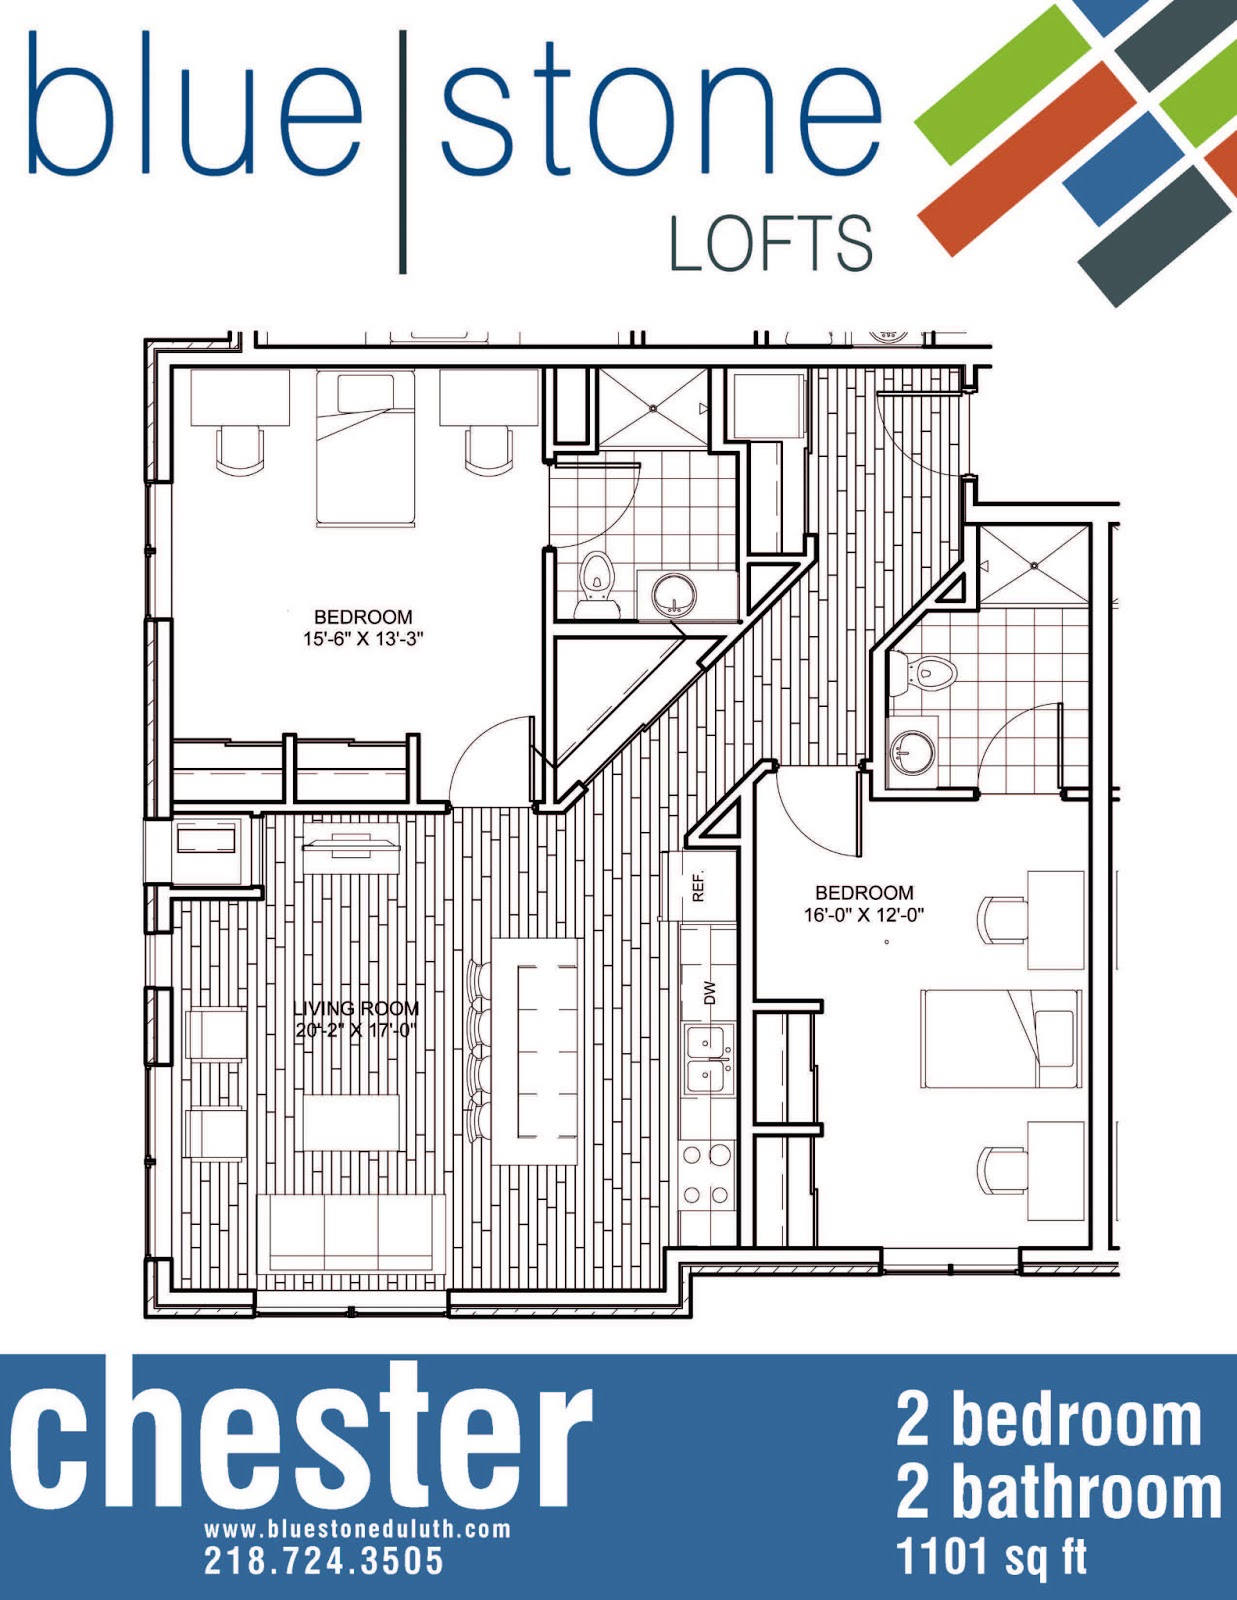 bluestone lofts floor plans